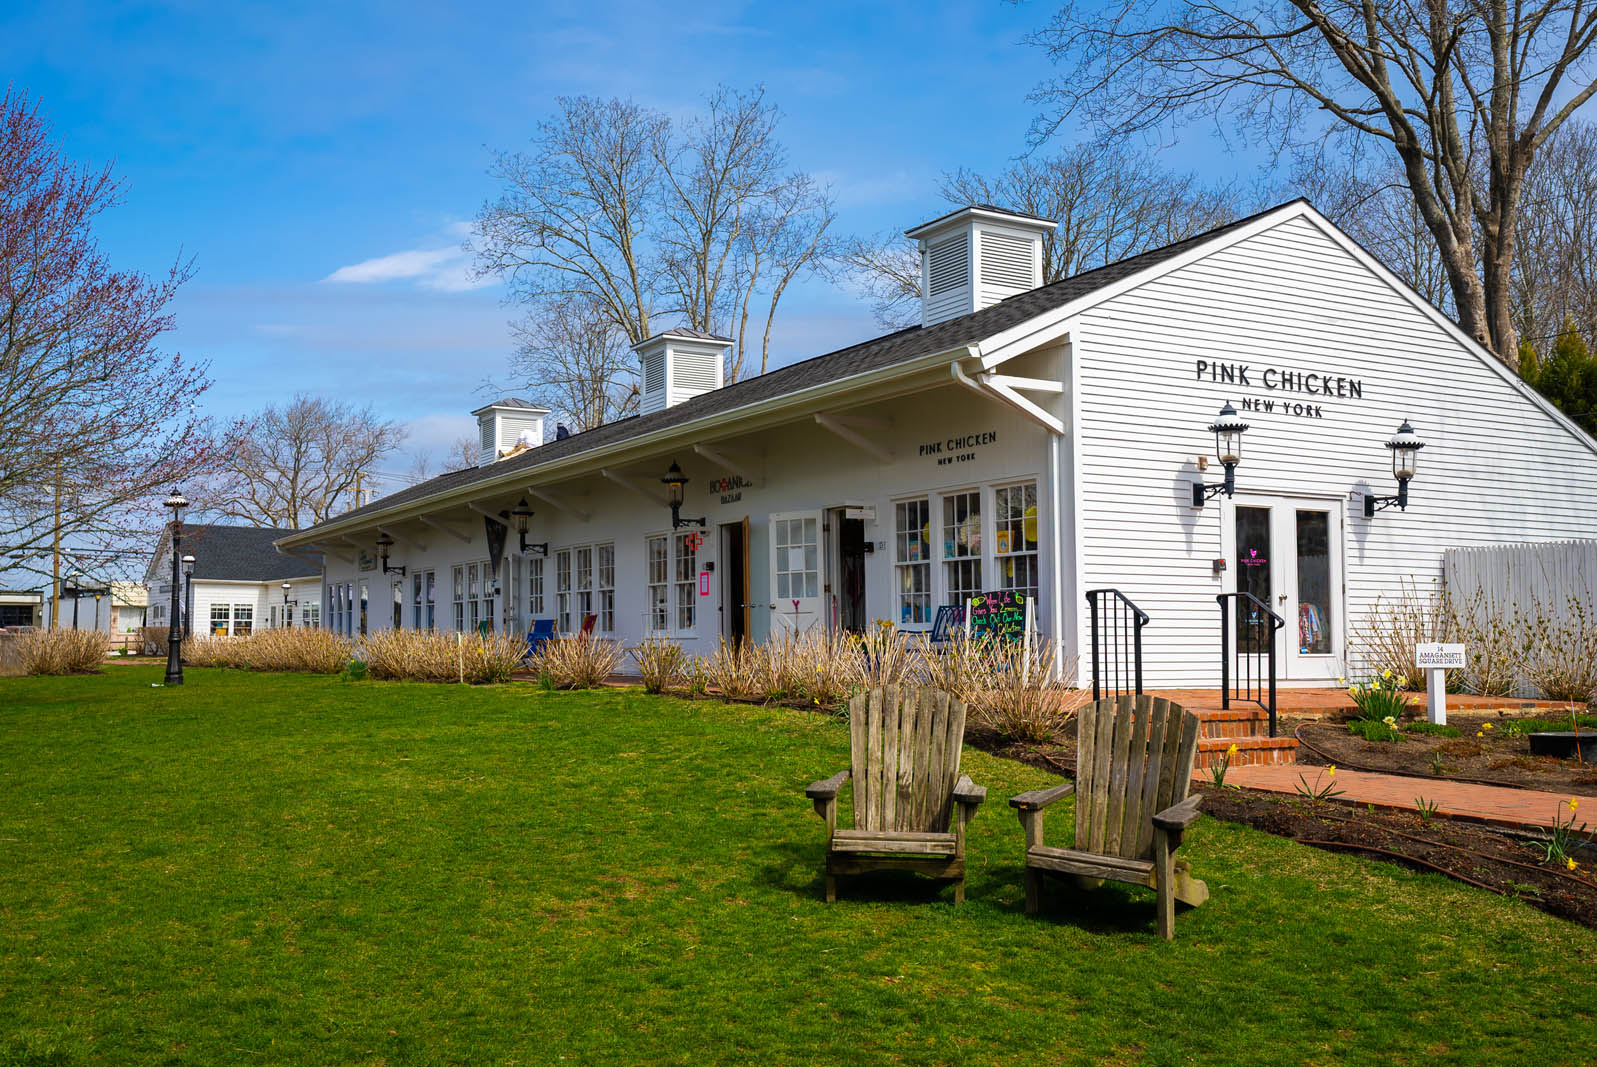 Shops in Amagansett Square in the Hamptons New York